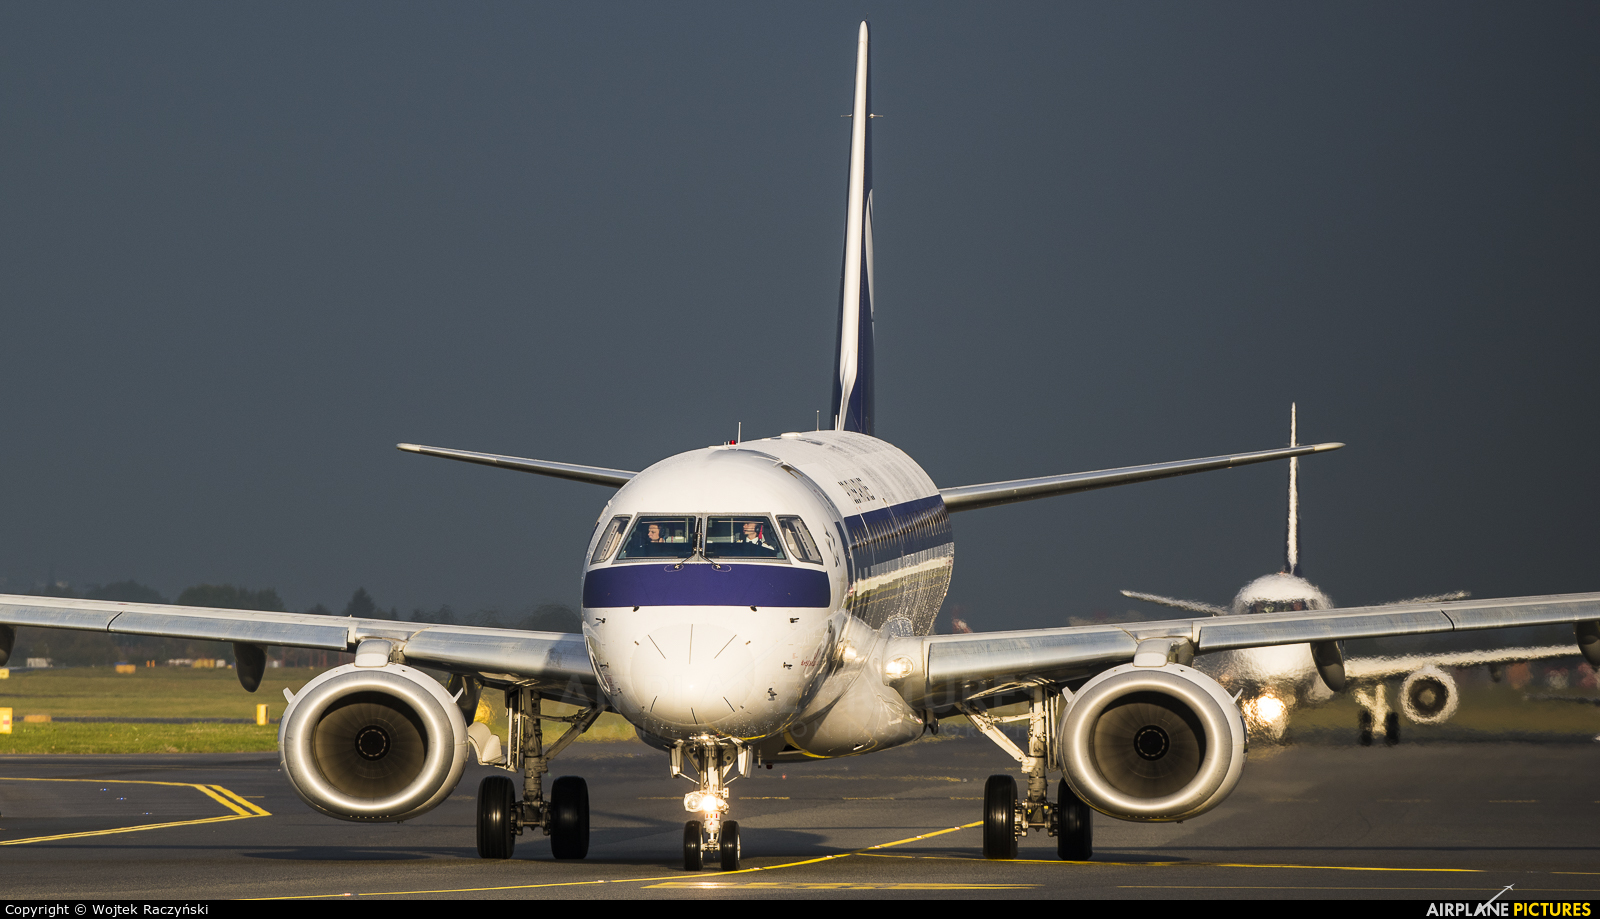 LOT - Polish Airlines SP-LNB aircraft at Warsaw - Frederic Chopin